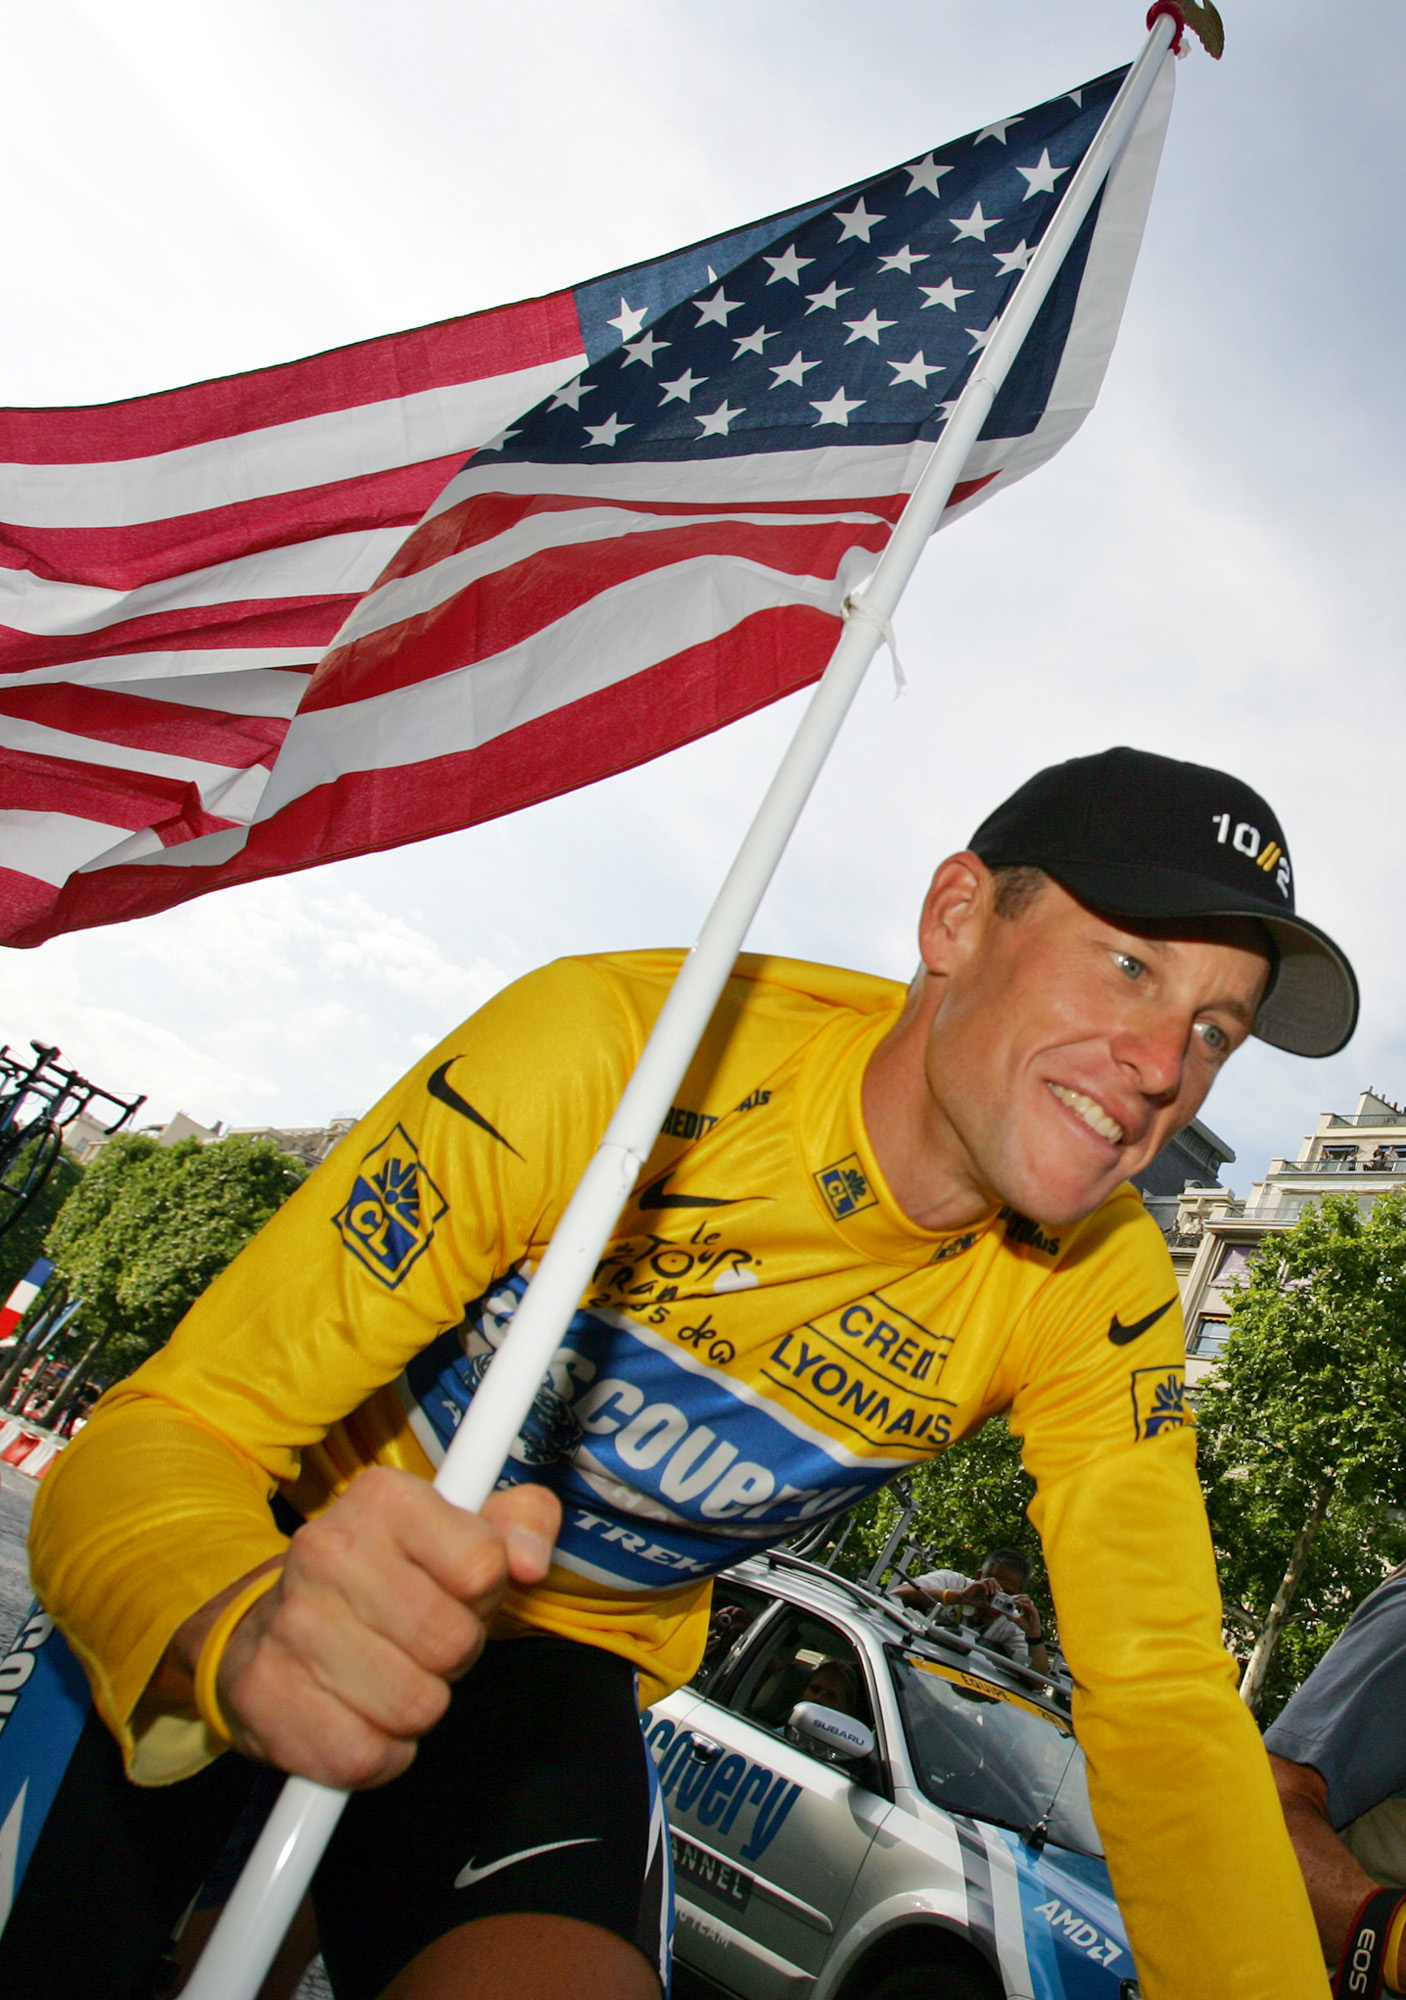 Lance Armstrong carries the U.S. flag during a victory parade after winning his seventh Tour de France. (AP)